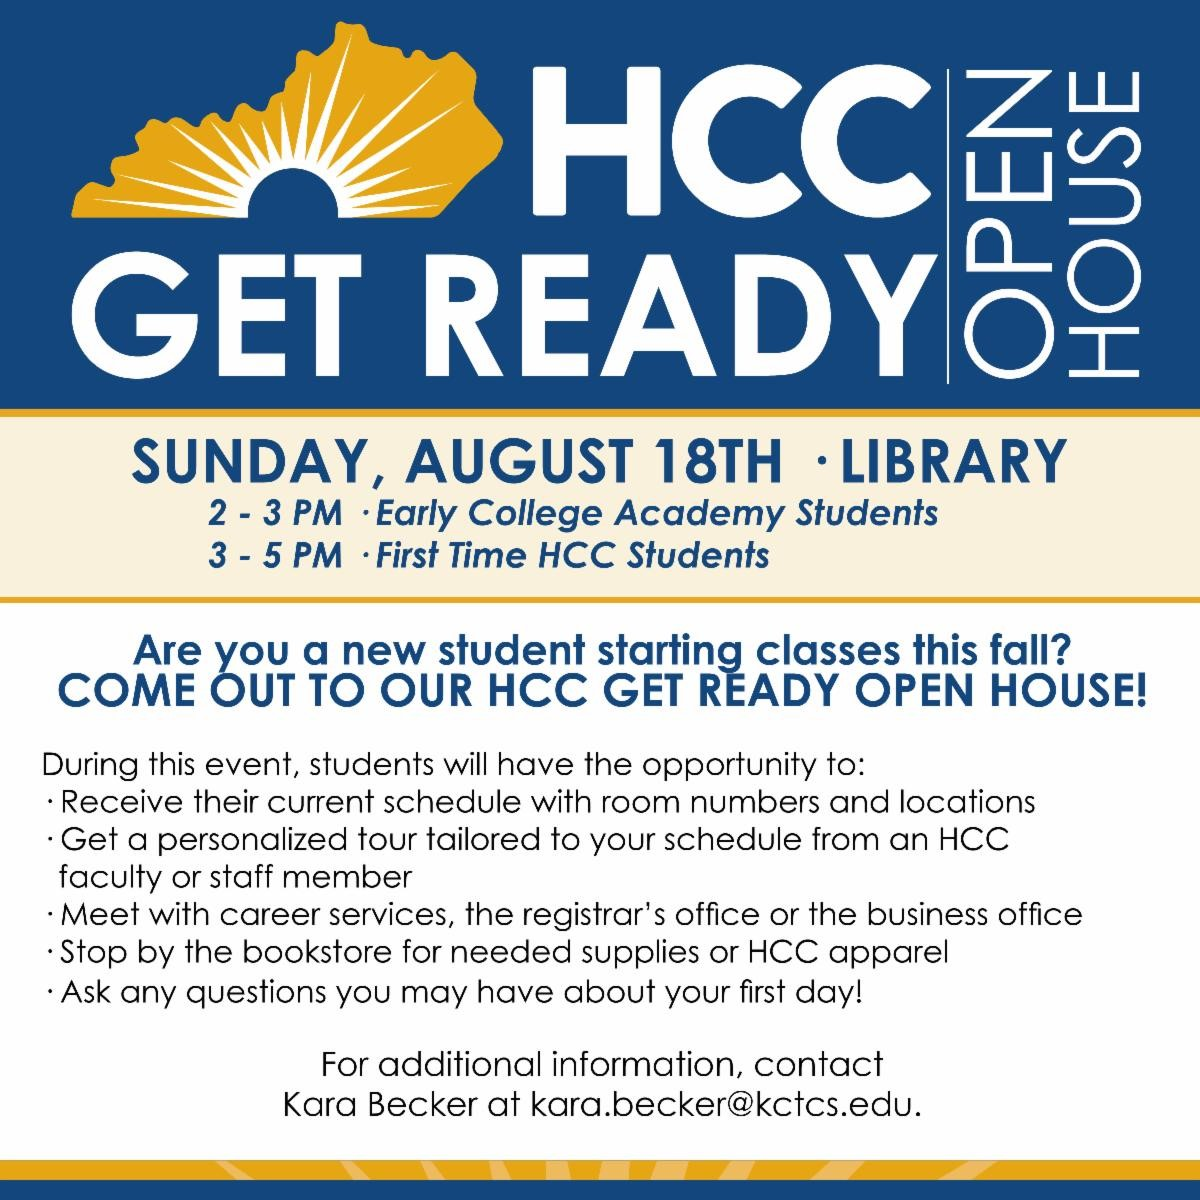 Are you a new student starting classes this fall?  Come out to our HCC Get Ready Open House!